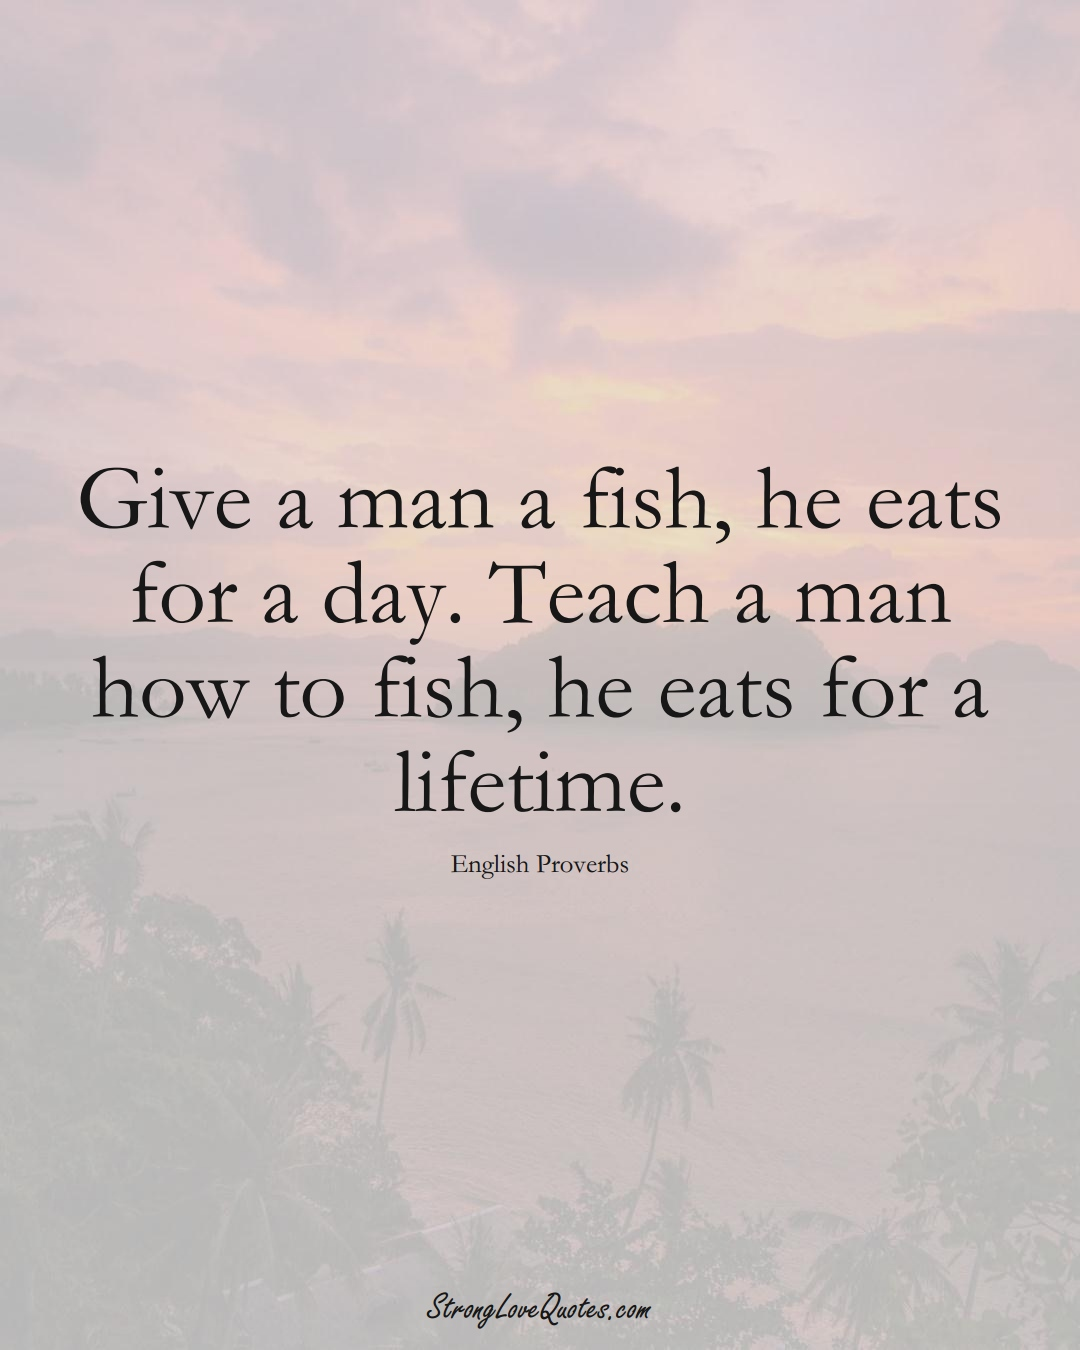 Give a man a fish, he eats for a day. Teach a man how to fish, he eats for a lifetime. (English Sayings);  #EuropeanSayings